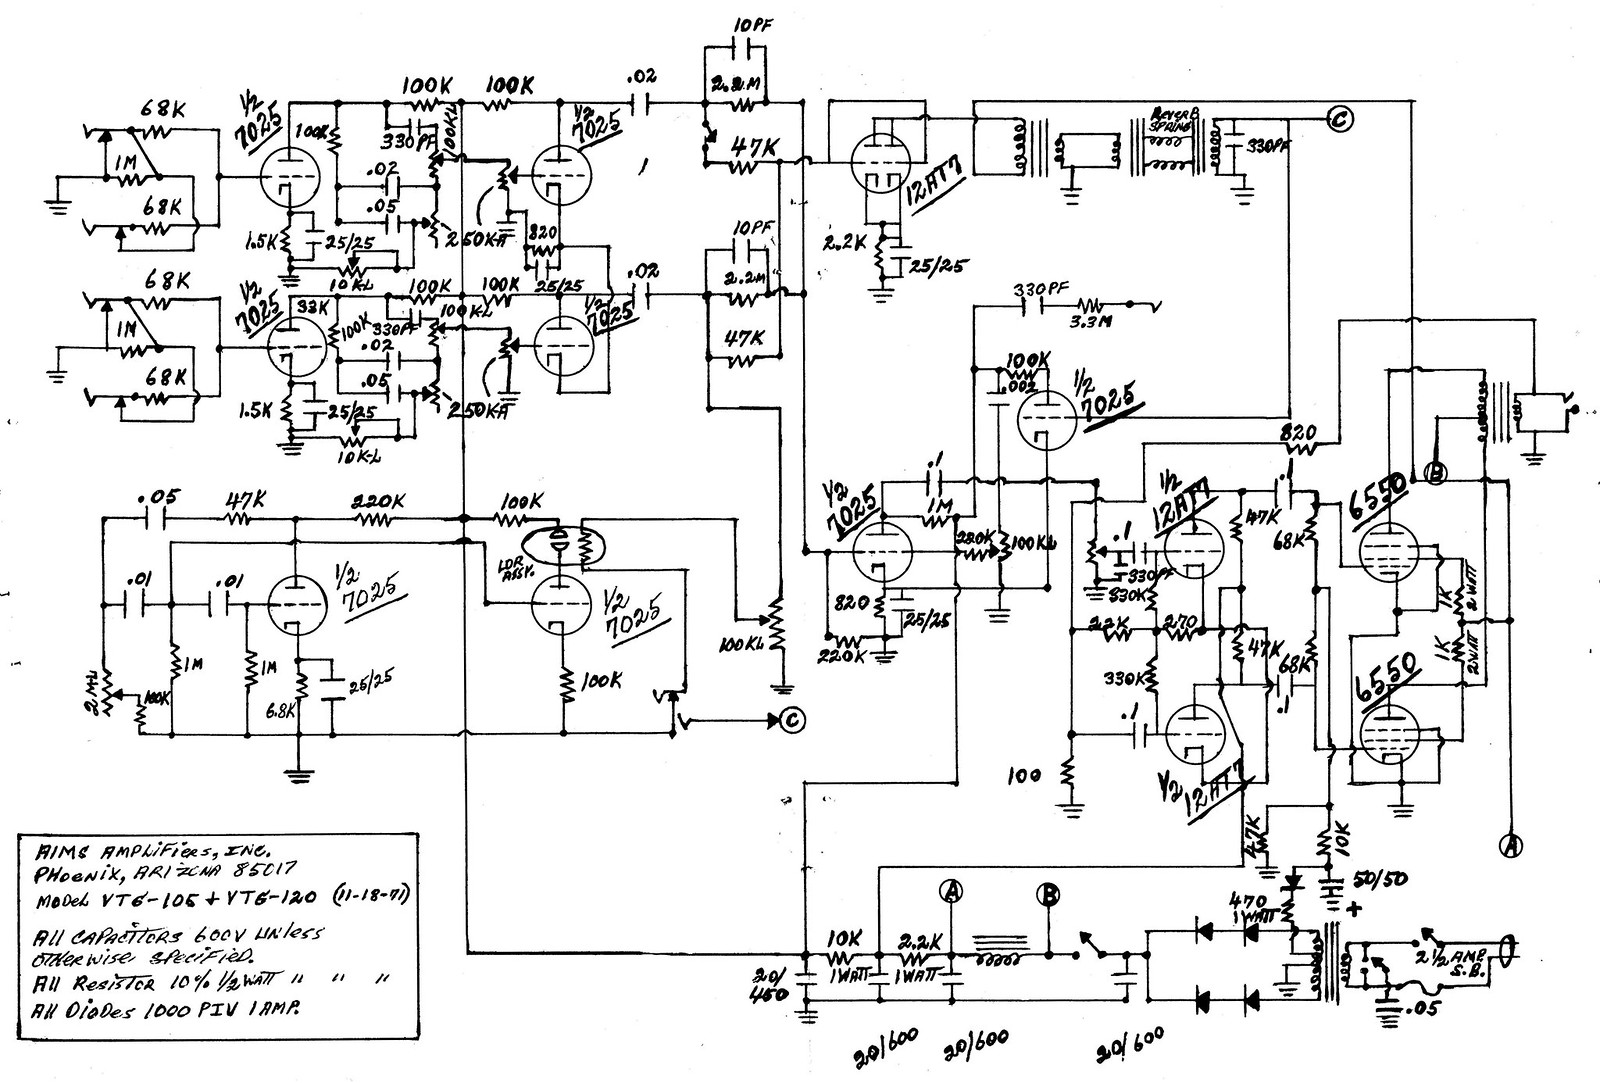 14628046201_1b8df4668e_h jacobs mileage master wiring diagram wiring diagrams wiring diagram for jacobs ultra coil at webbmarketing.co